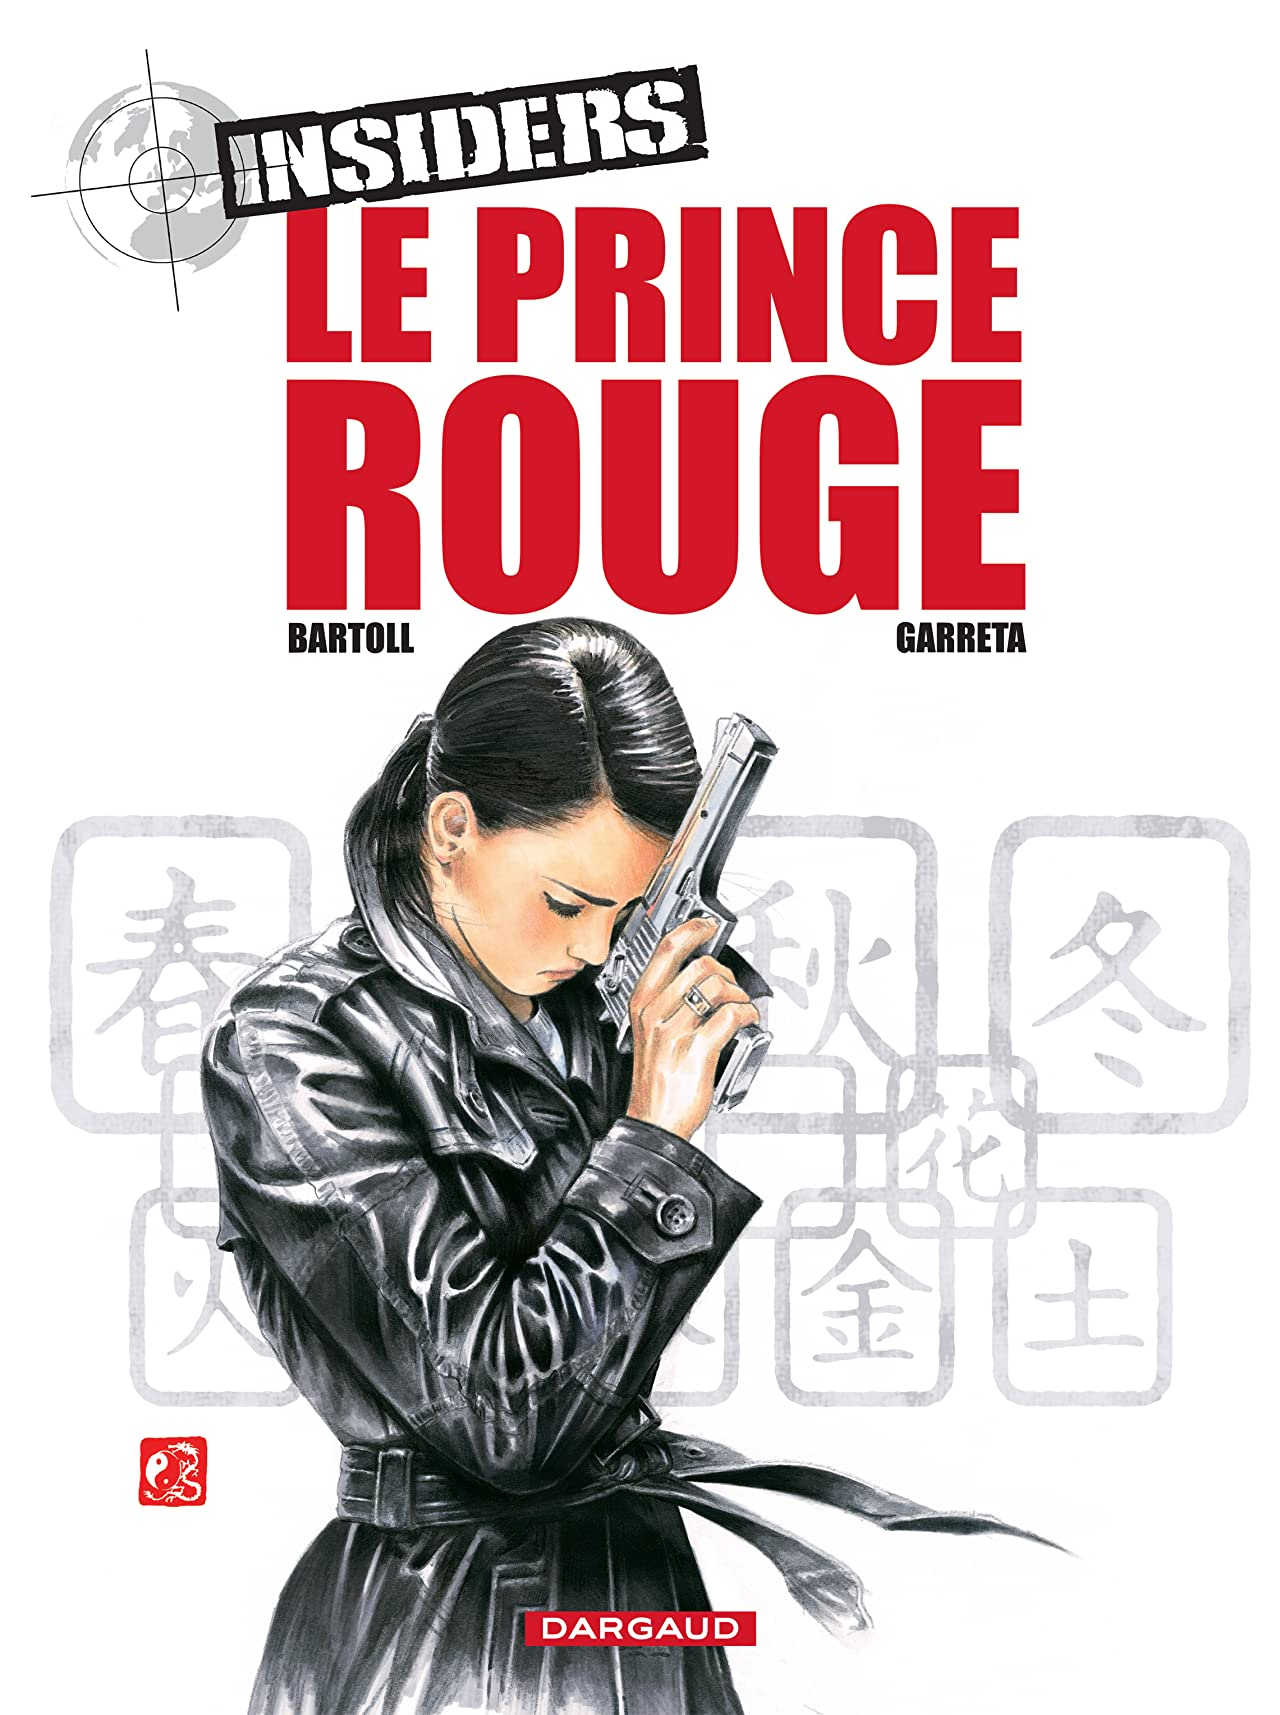 Insiders Vol. 8: Le Prince Rouge